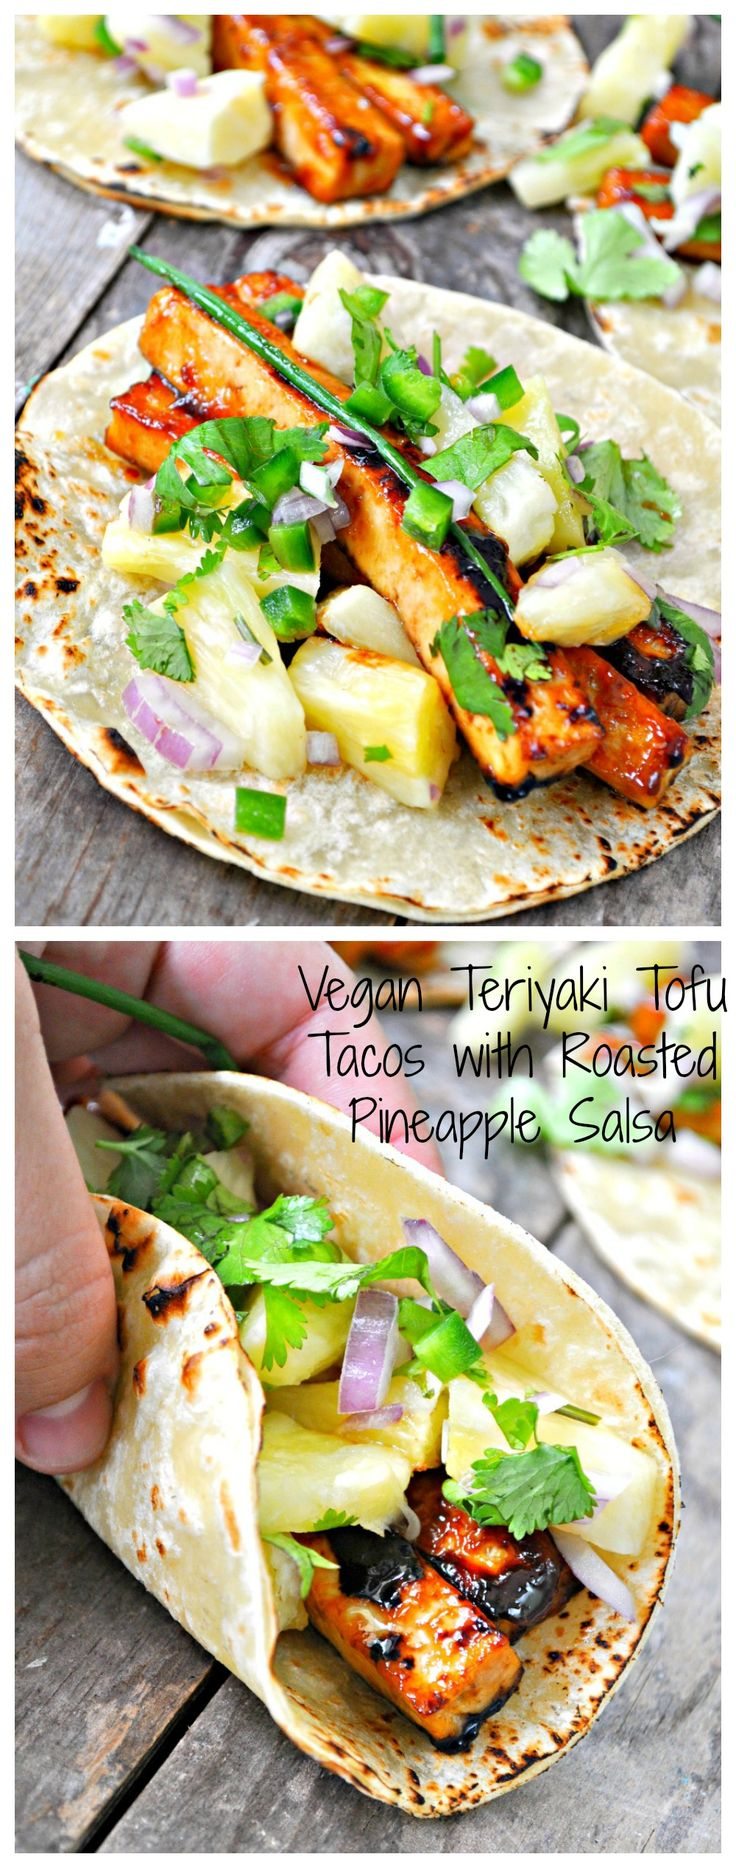 Vegan Teriyaki Tofu Tacos with Roasted Pineapple Salsa